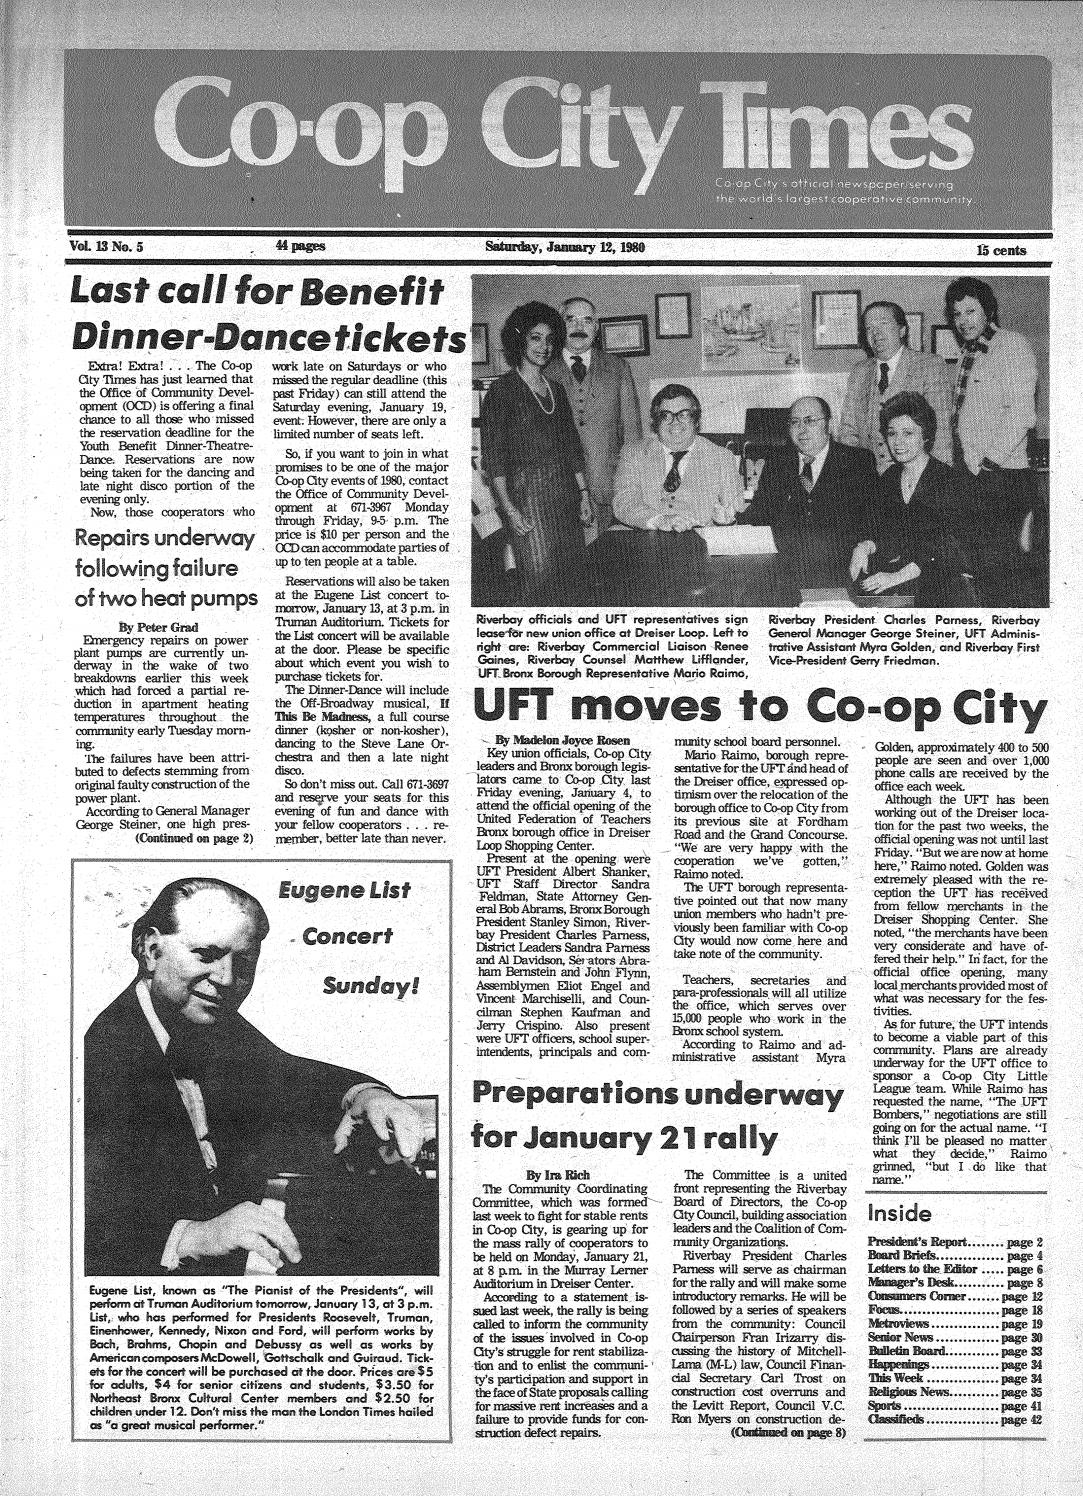 ee61ac4faf511 Co-op City Times 01 12 1980 by Co-op City Times - issuu